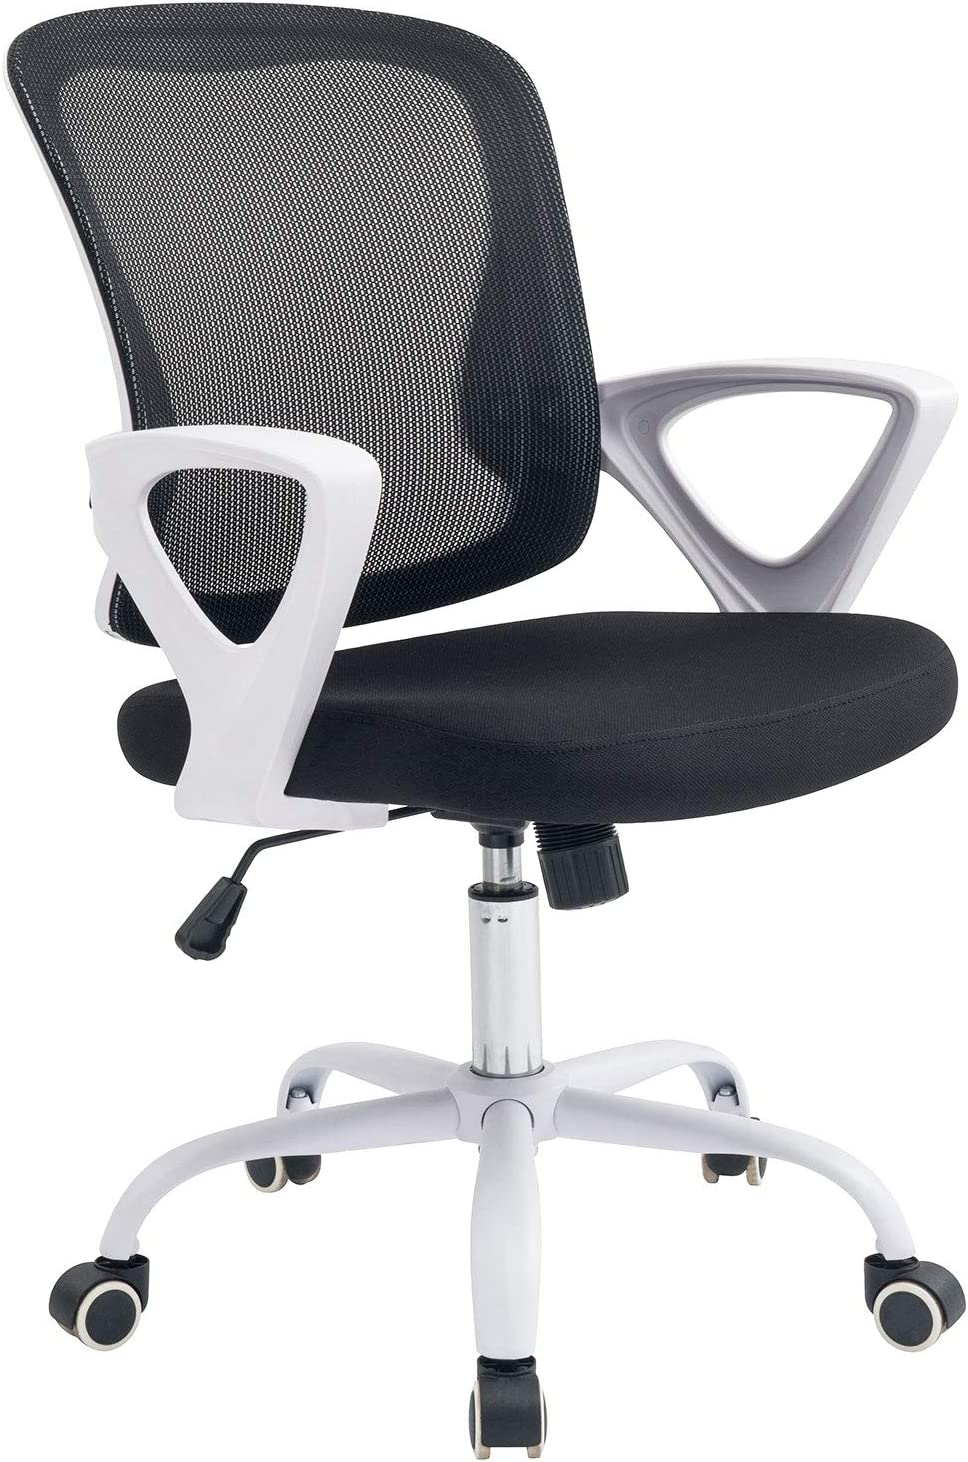 Office Chair Ergonomic Desk Chair Adjustable Modern Mid Back Swivel Chair for Small Place, White (White)